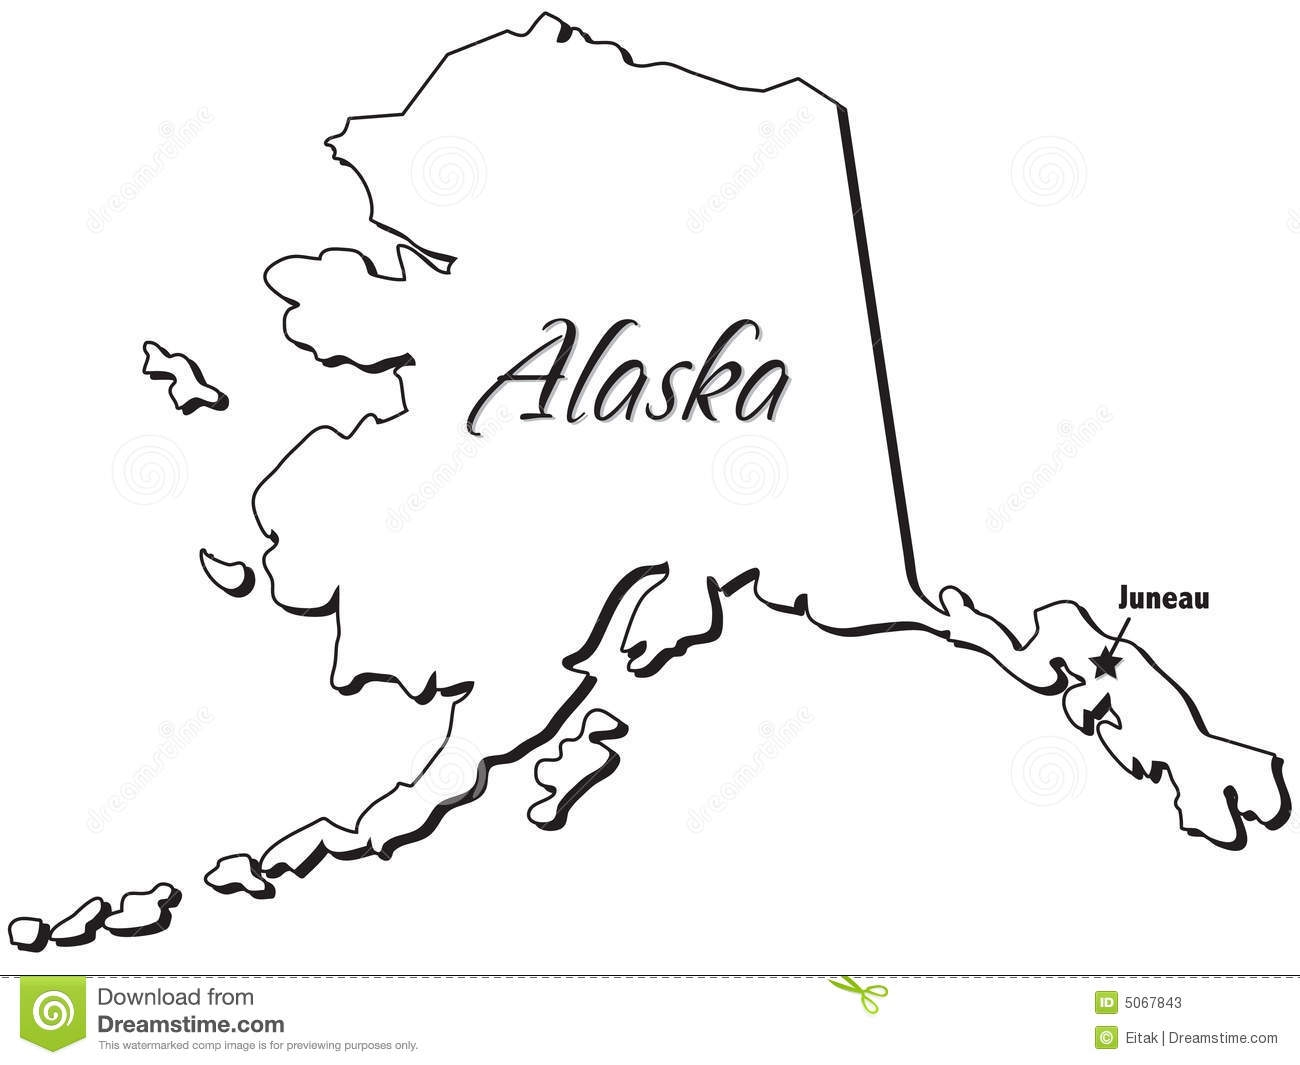 Clipart of alaska graphic black and white library Alaska clipart outline - ClipartFest graphic black and white library